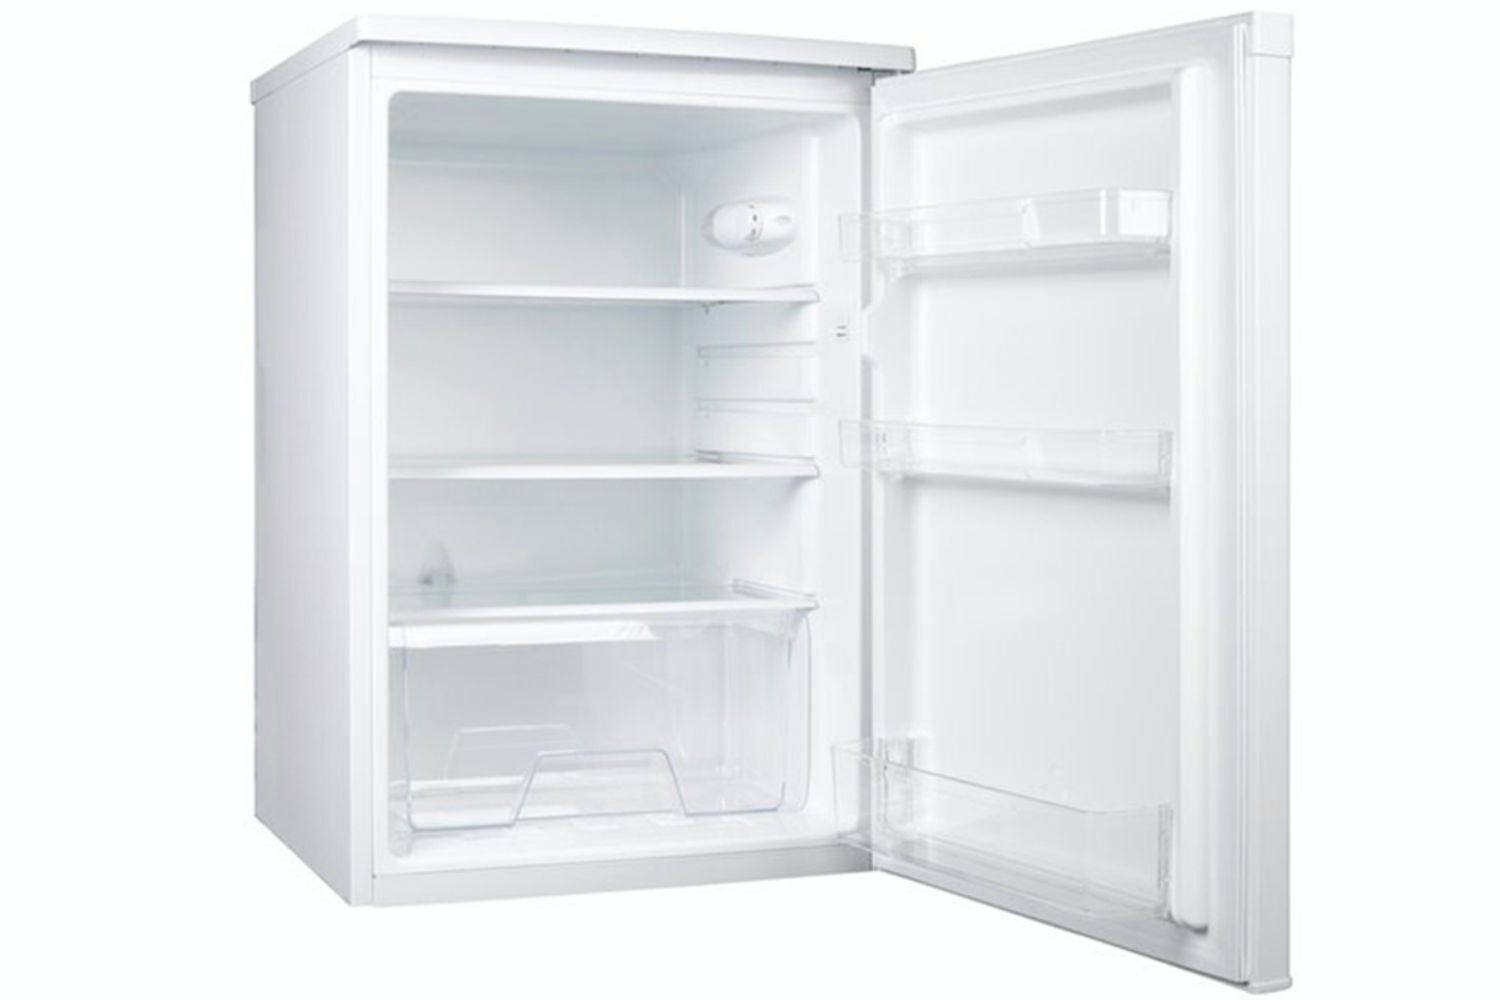 Belling Freestanding Larder Fridge | BL134WH